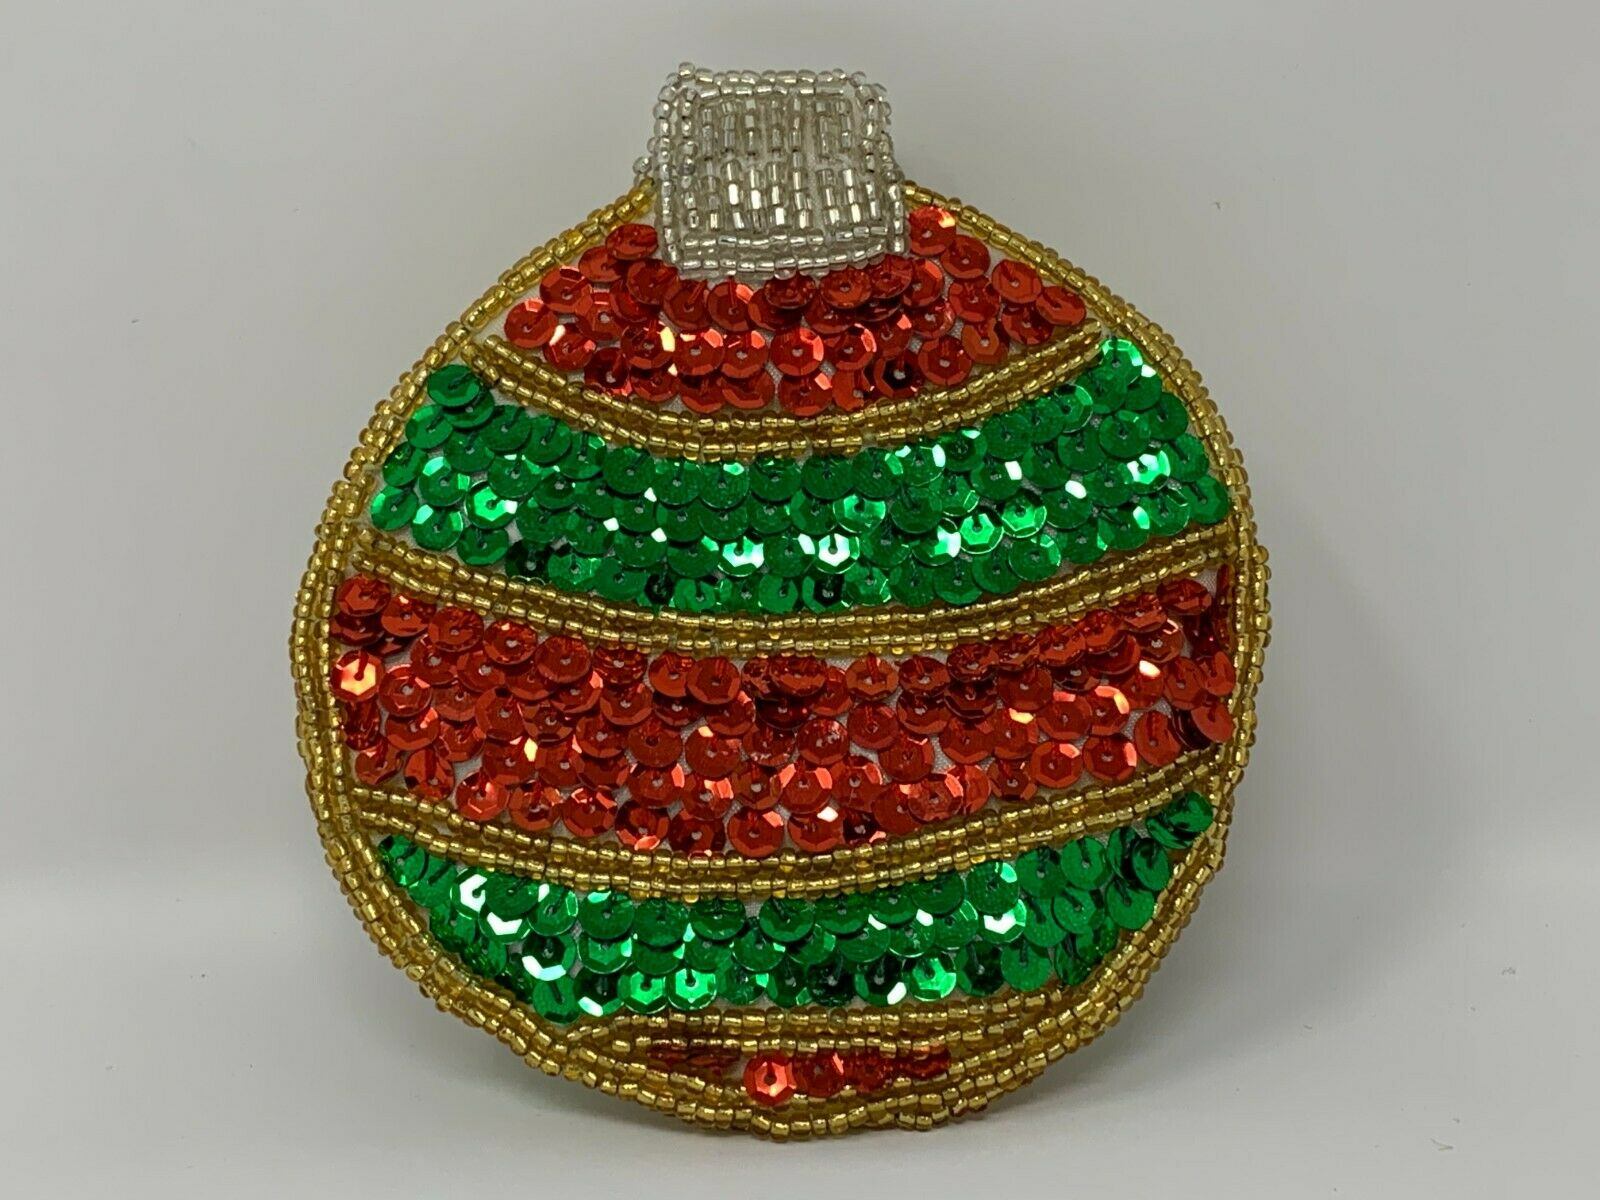 Lee Sands Sequins & Beaded Christmas Ornament Coin Purse #8